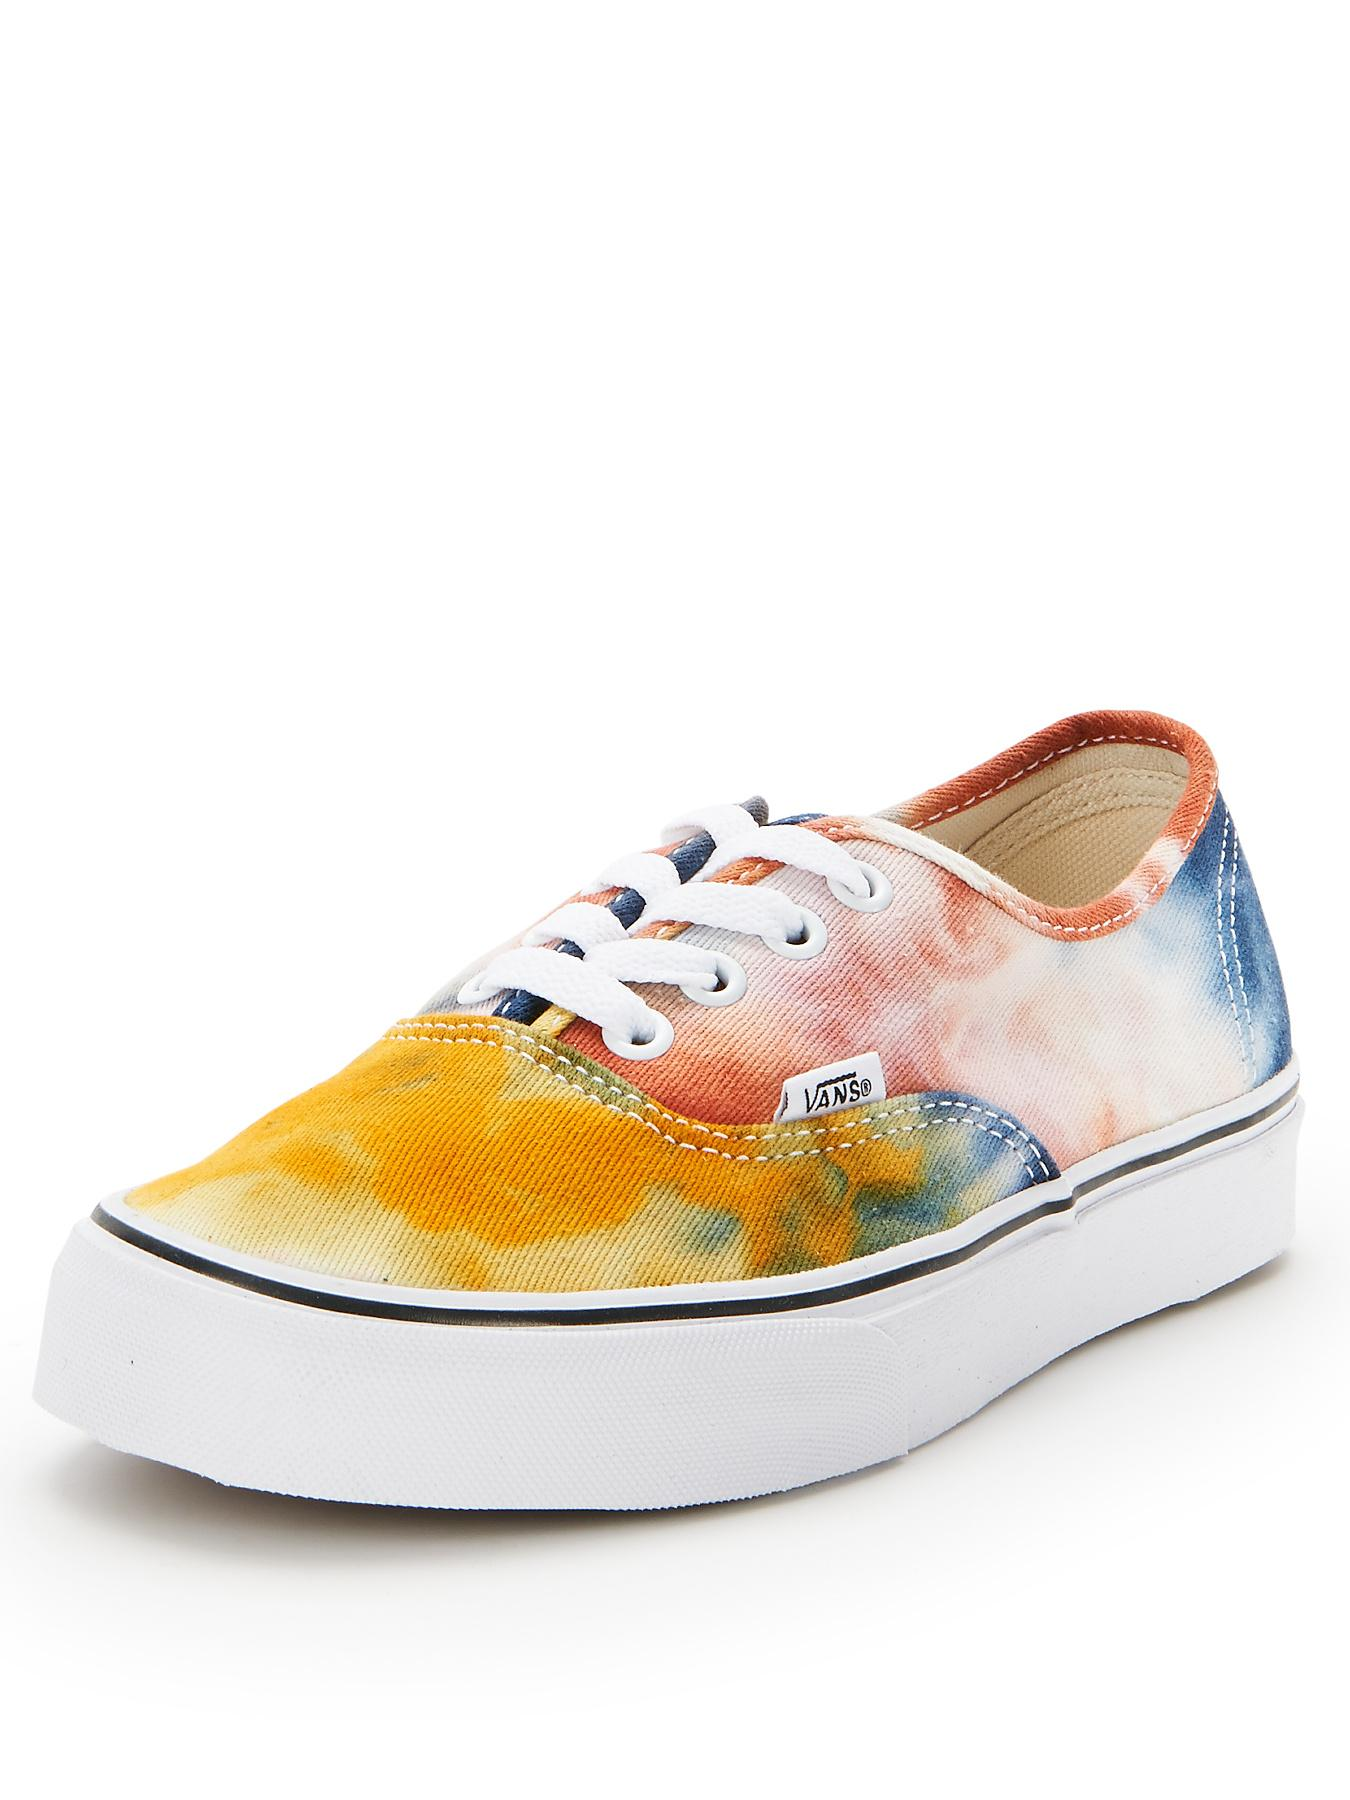 Vans Authentic Tie Dye Trainers - Navy, Navy